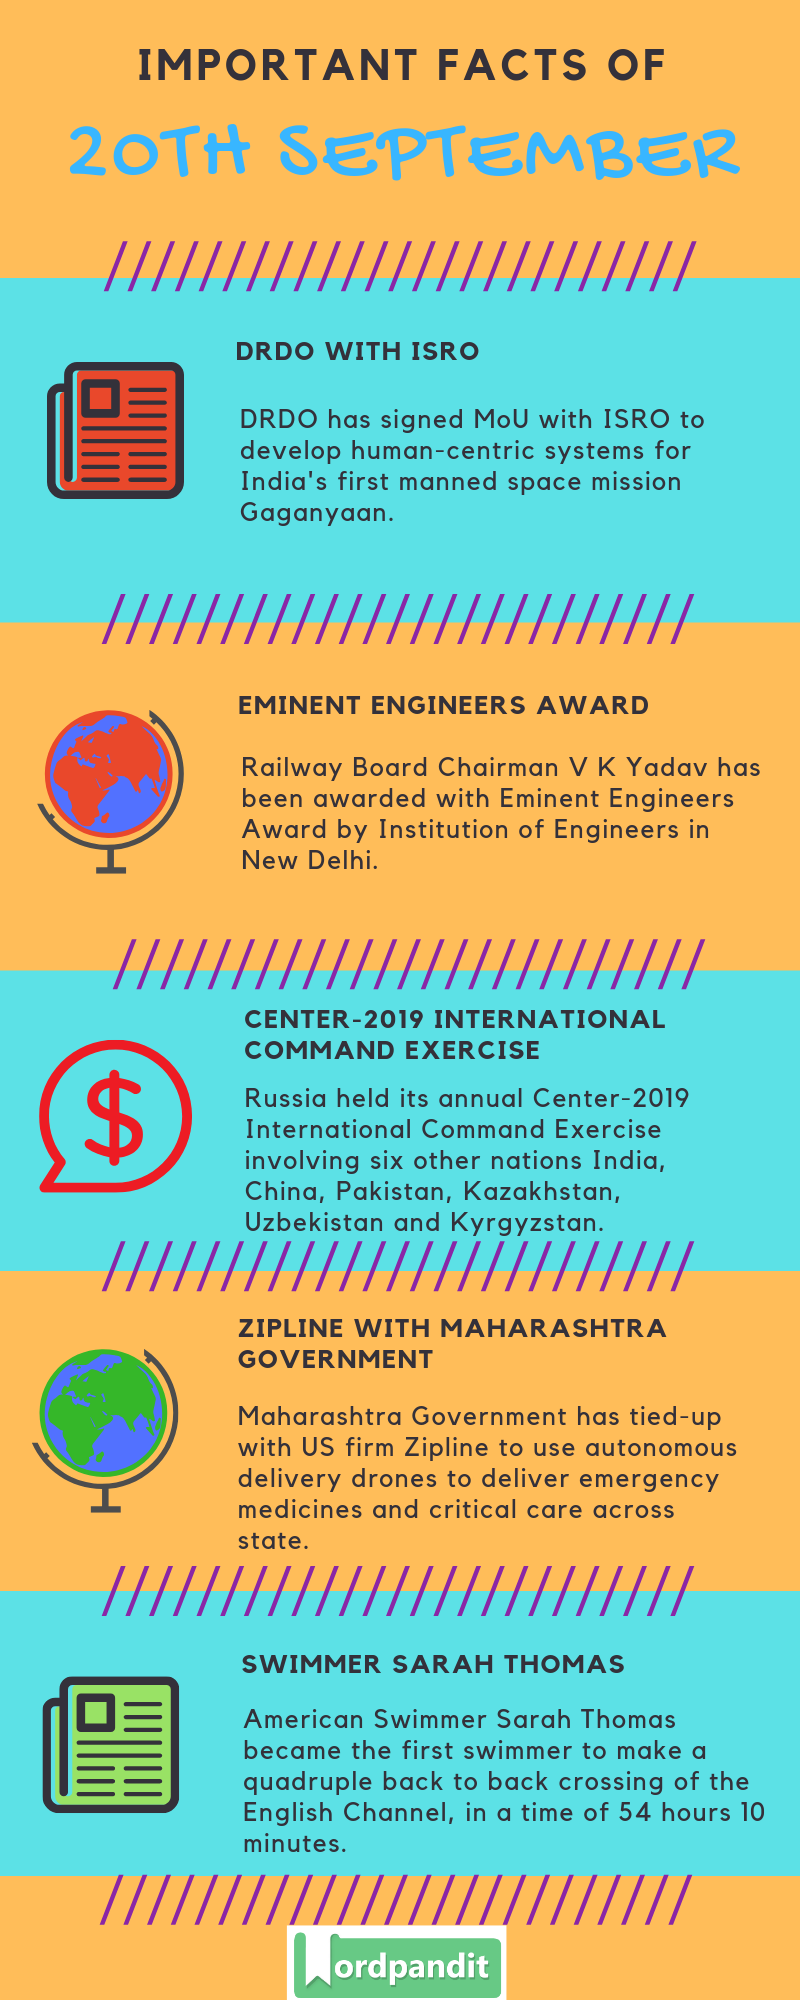 Daily Current Affairs 20 September 2019 Current Affairs Quiz 20 September 2019 Current Affairs Infographic